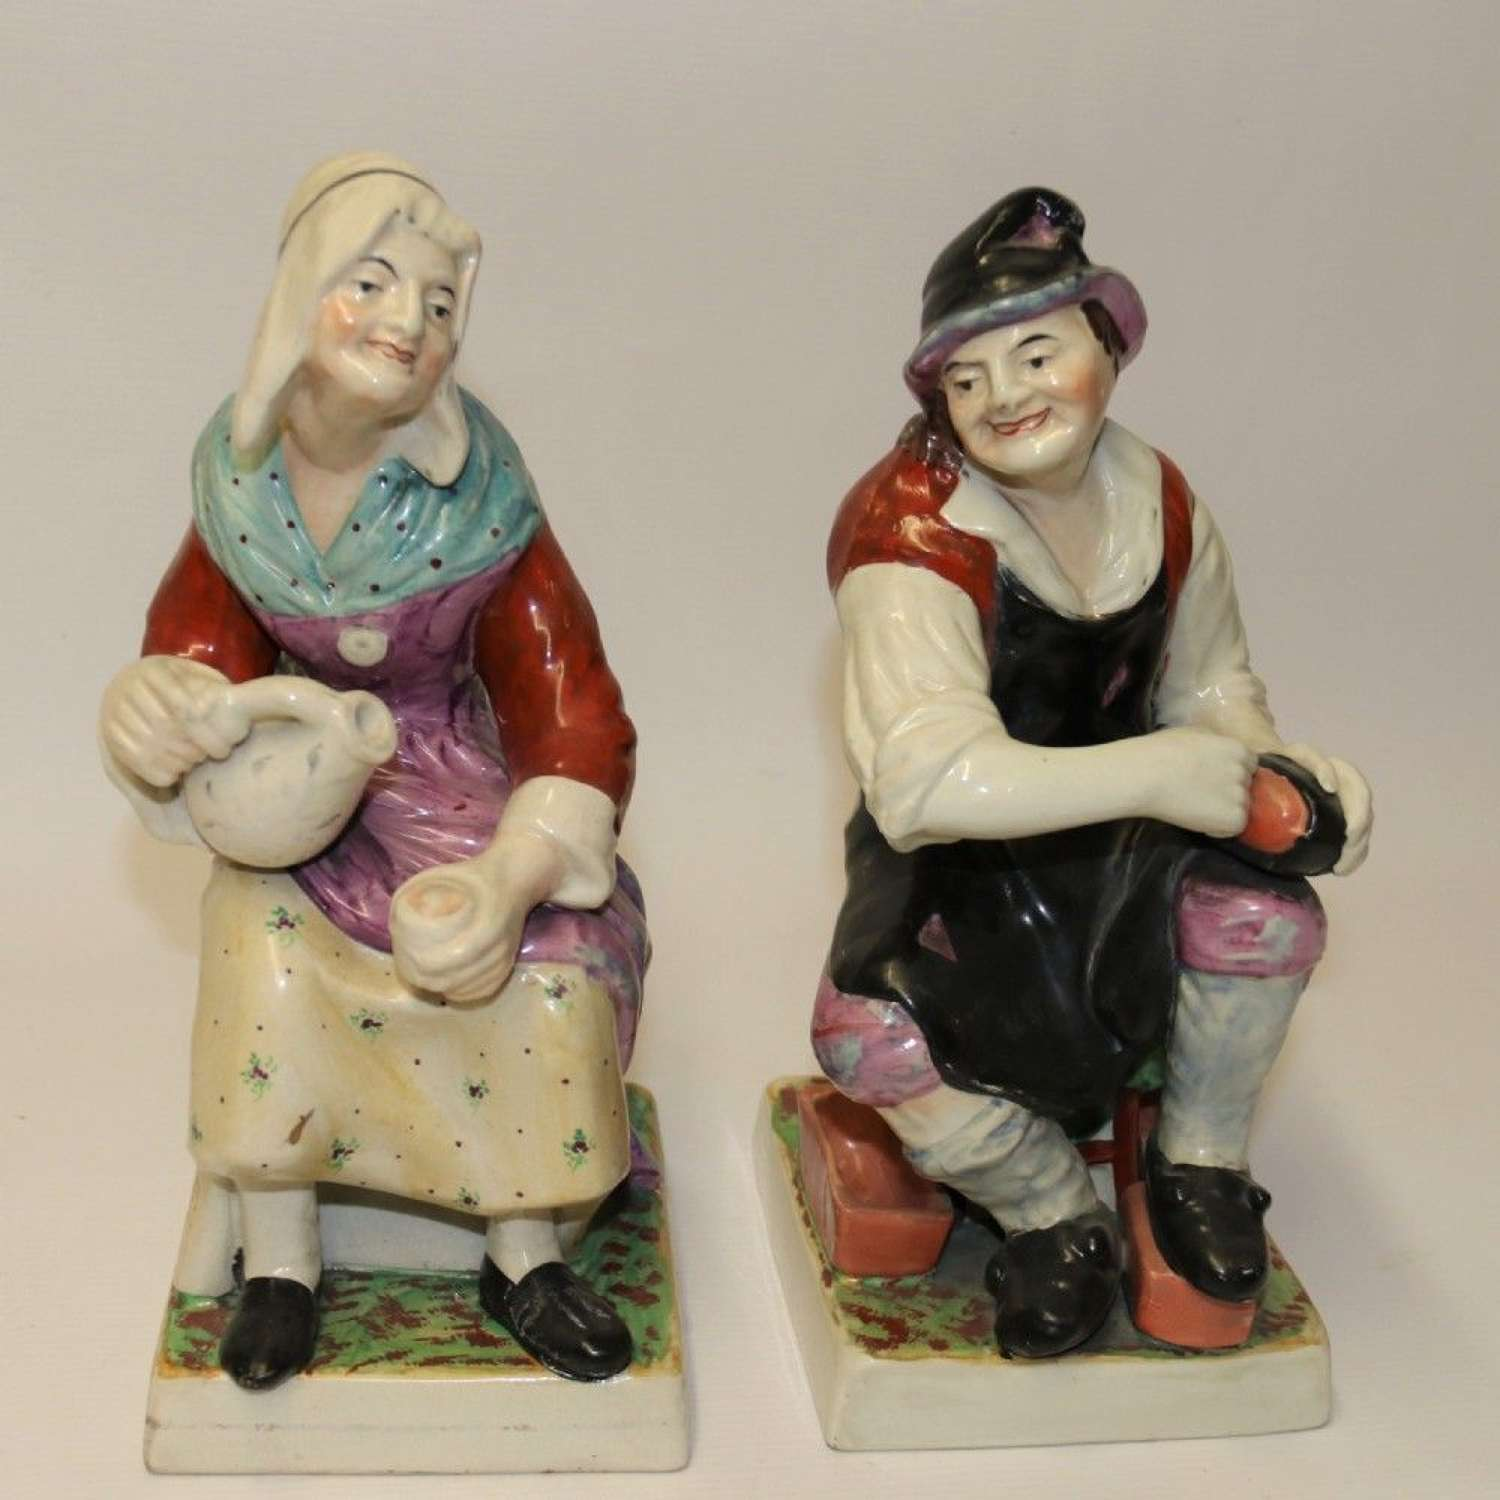 A Large Pair Of  19th C Staffordshire Pottery Seated Figures.